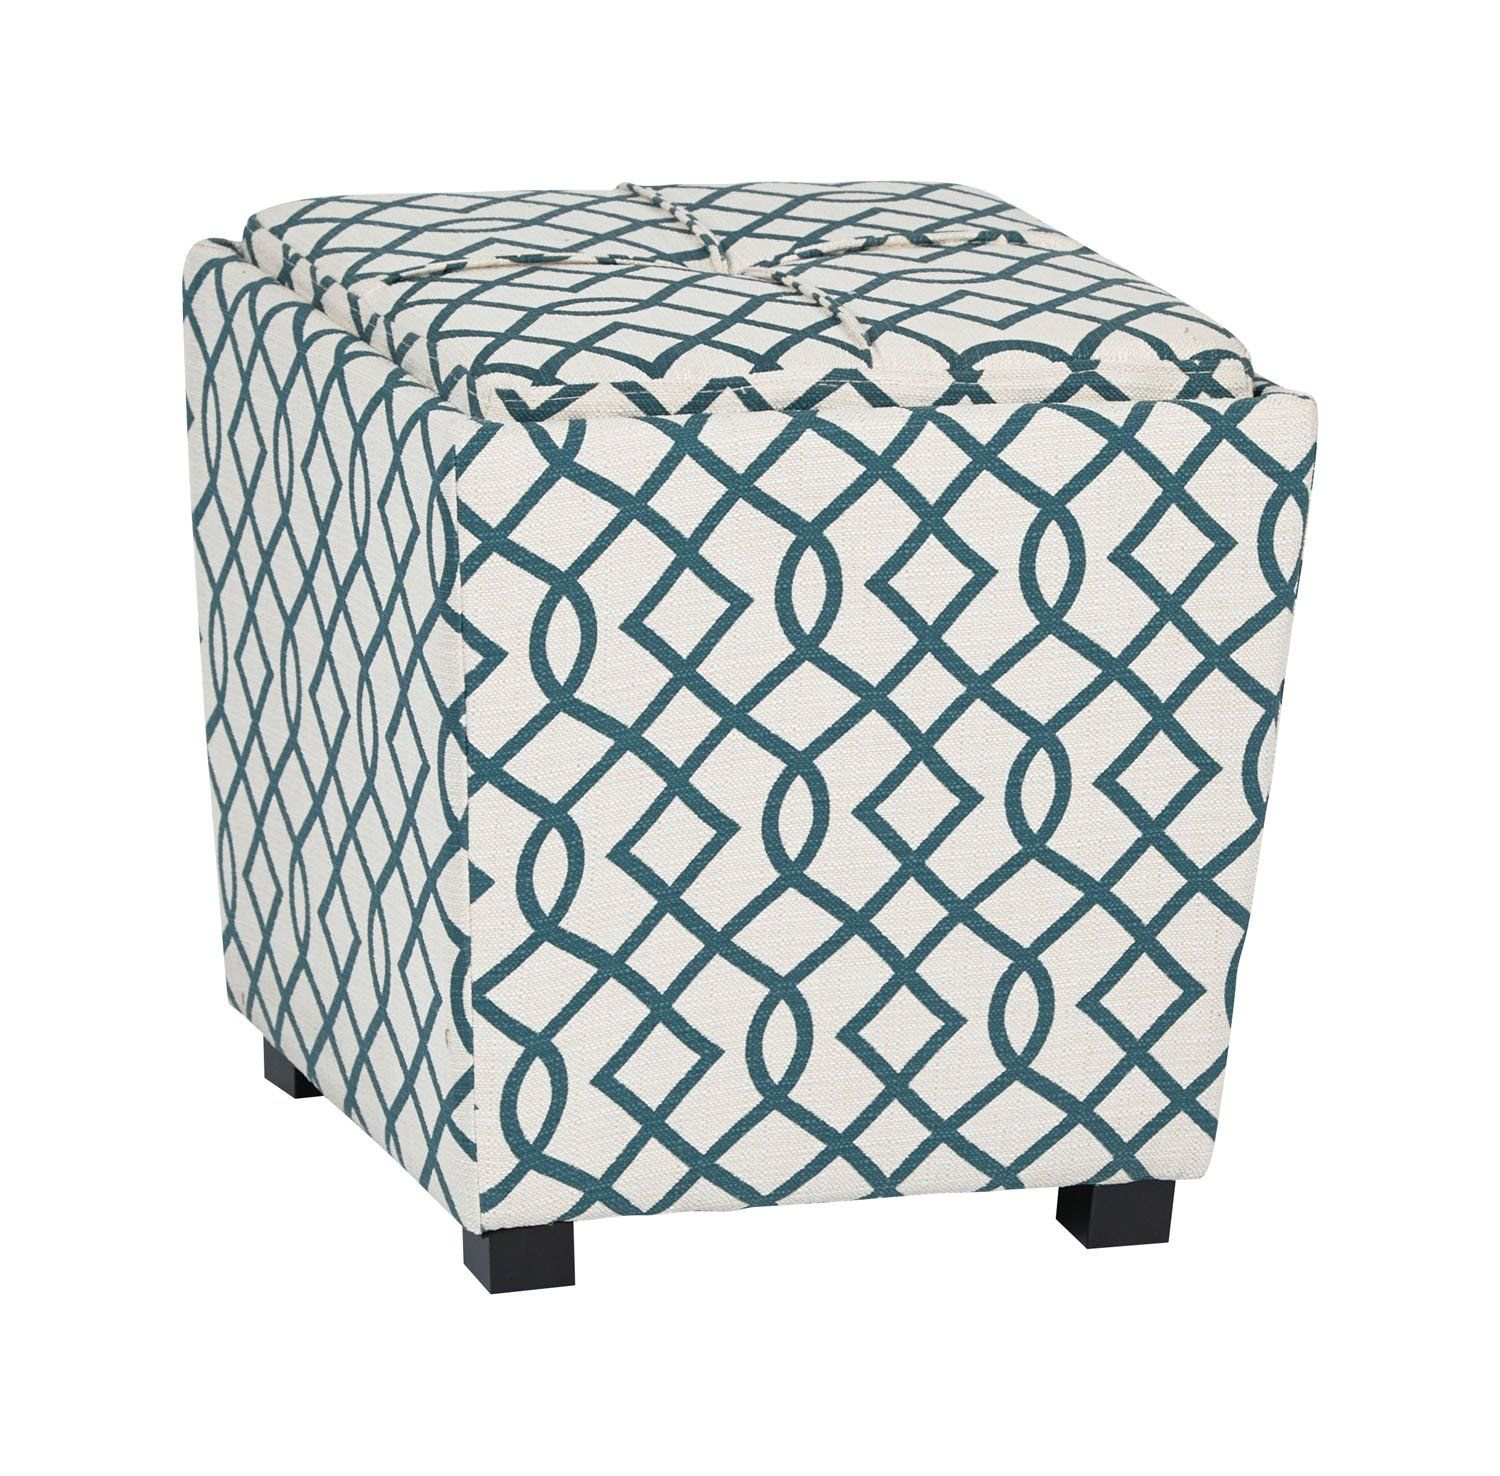 Osp Designs Furniture Decor 2 Piece Ottoman Set With Tray Top In